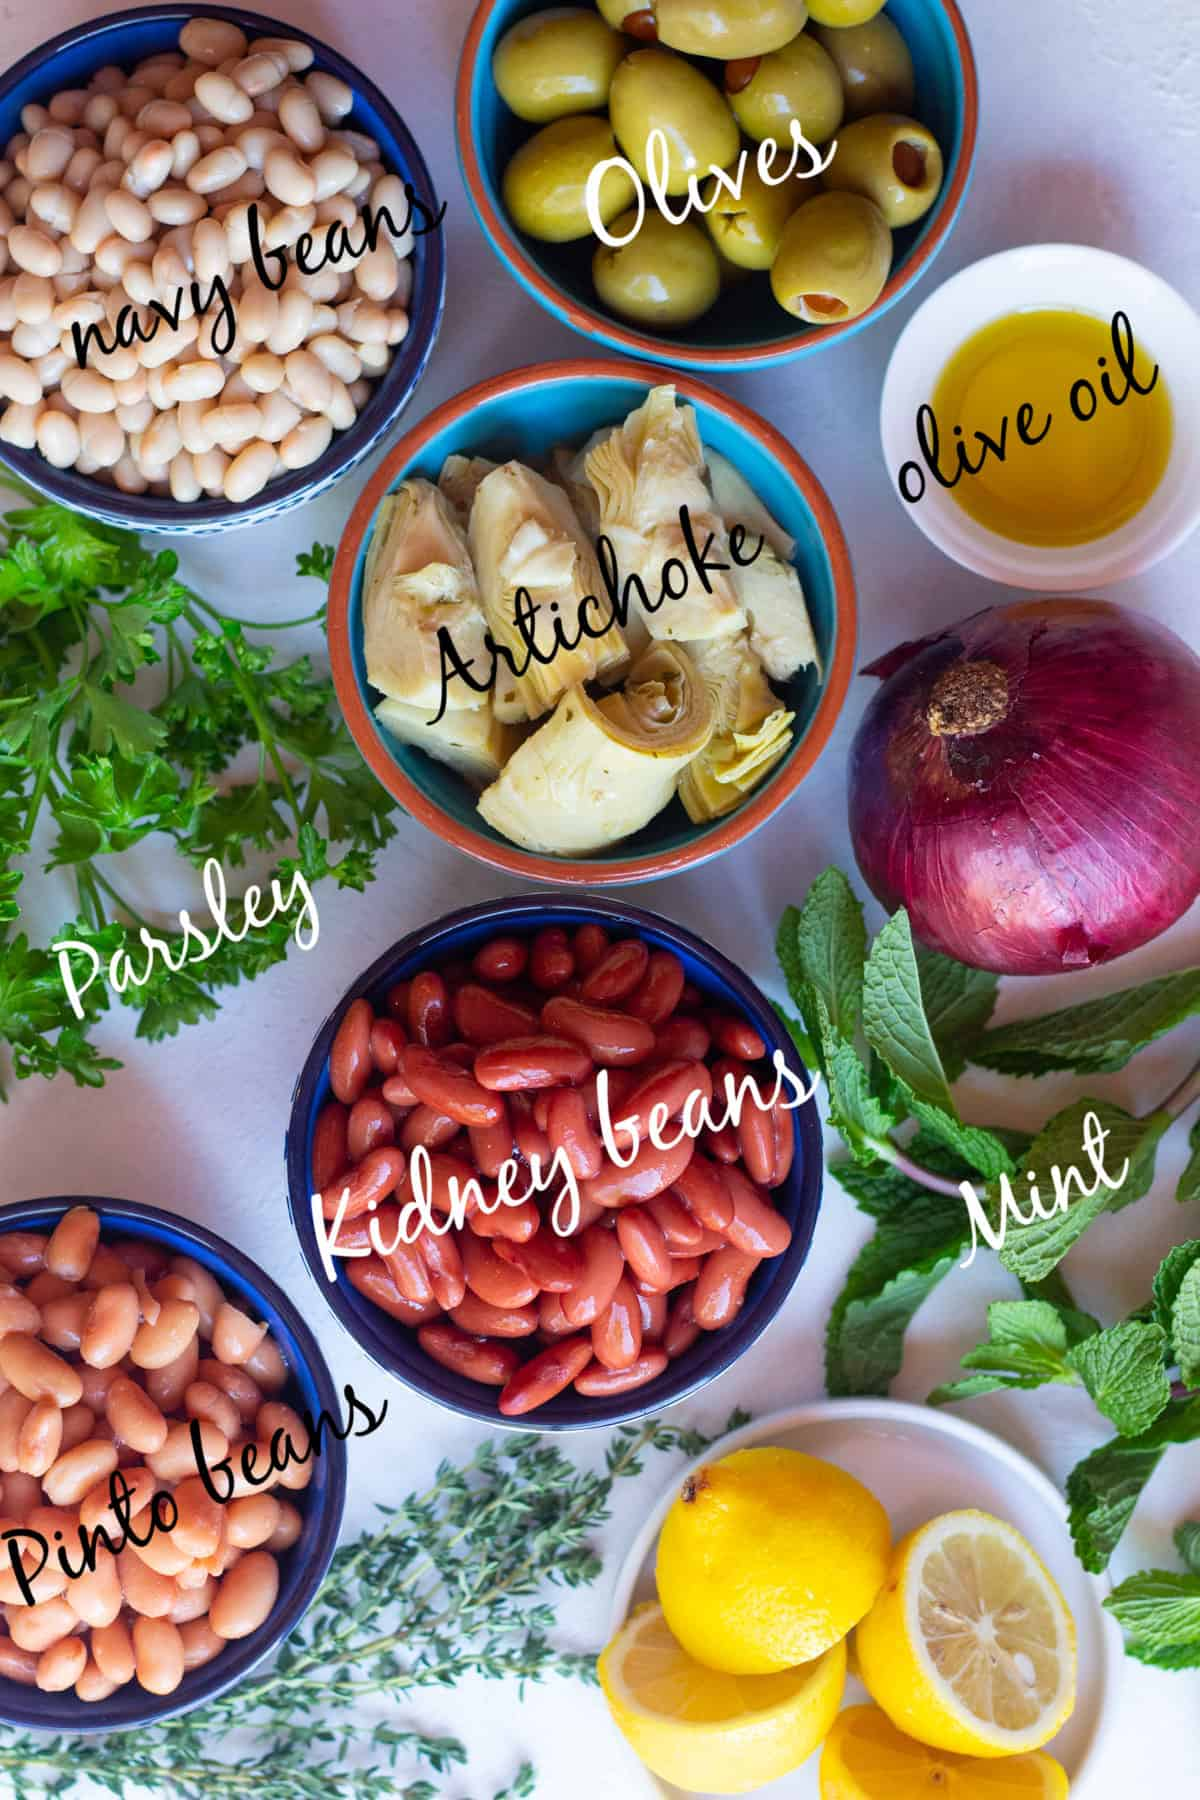 To make this salad, you need navy, kidney and pinto beans. You also need herbs, onion, artichoke and olives.